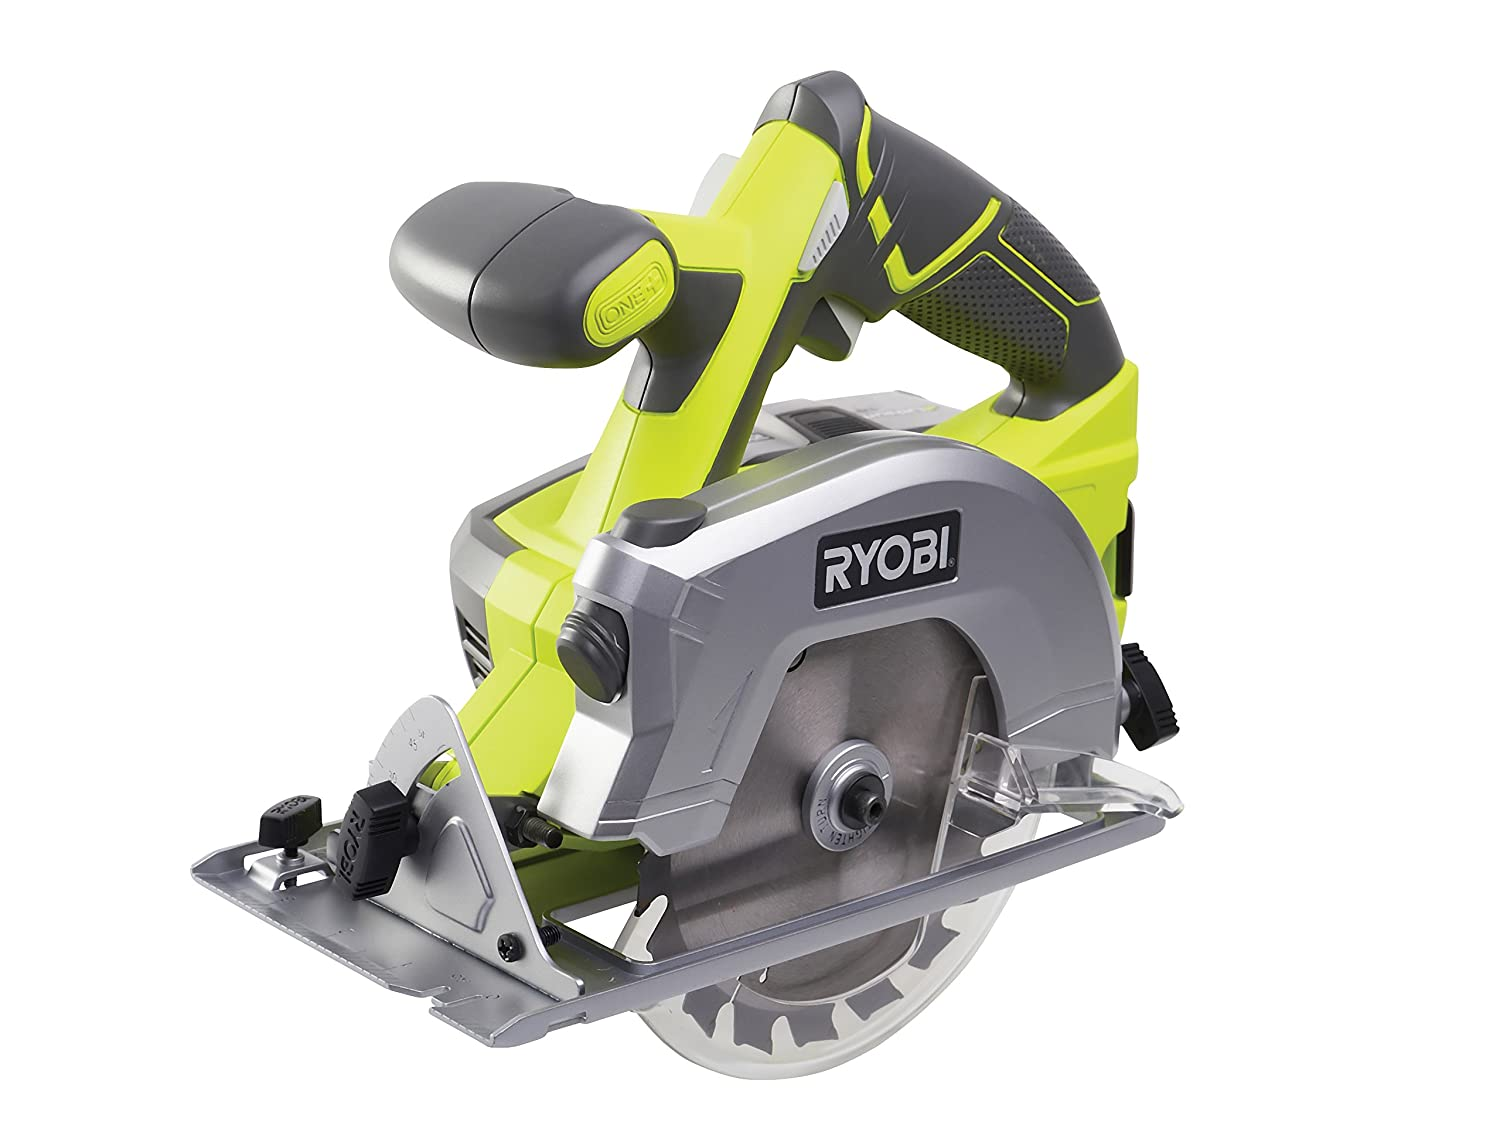 Ryobi rwsl1801m one circular saw 18 v body only greengrey ryobi rwsl1801m one circular saw 18 v body only greengrey amazon diy tools keyboard keysfo